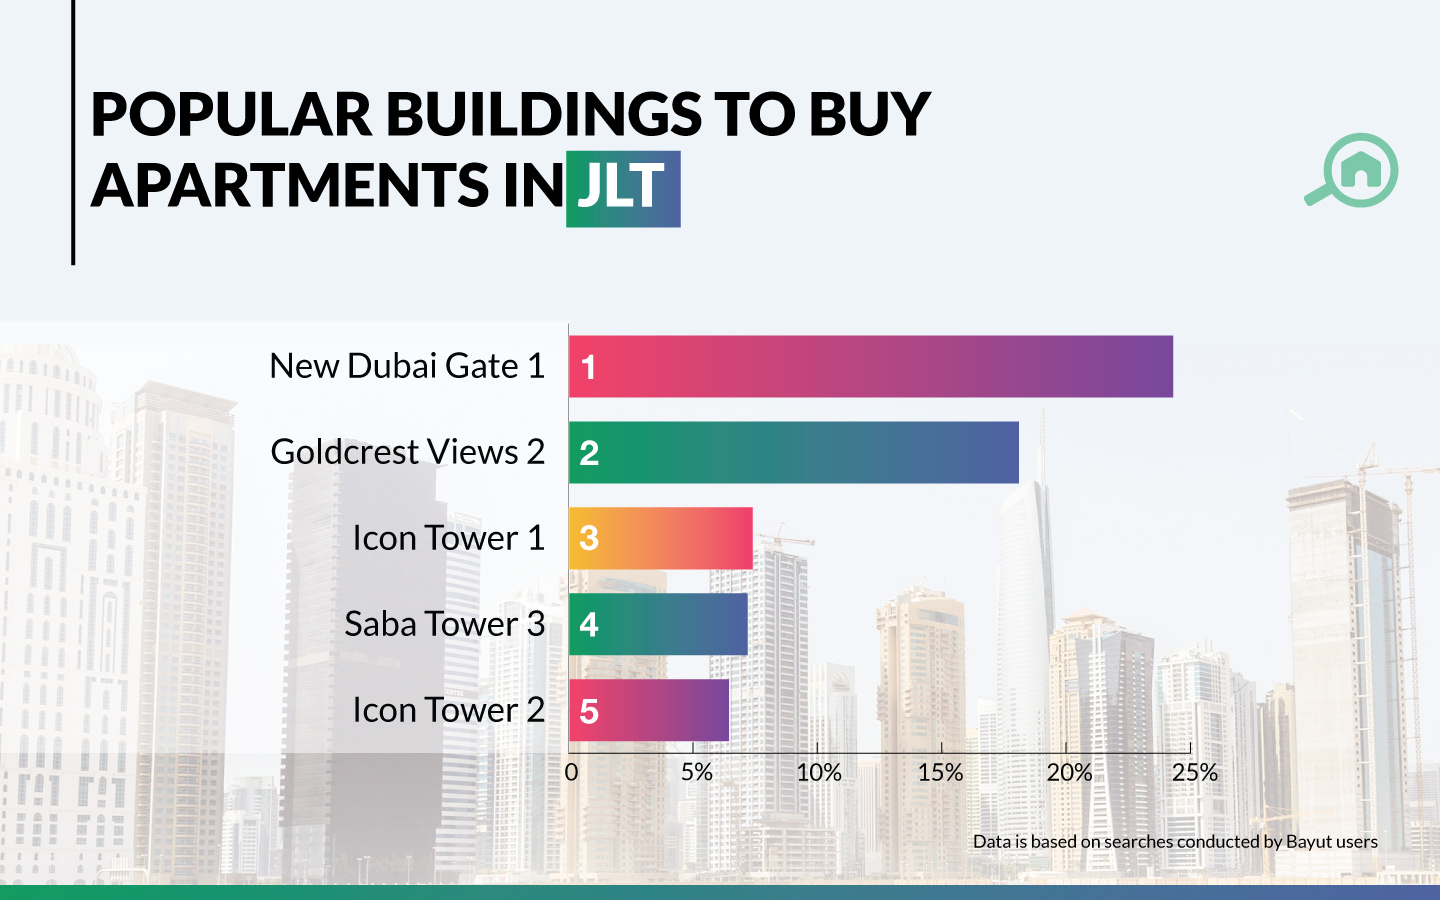 Graph showing popular buildings in to buy apartments